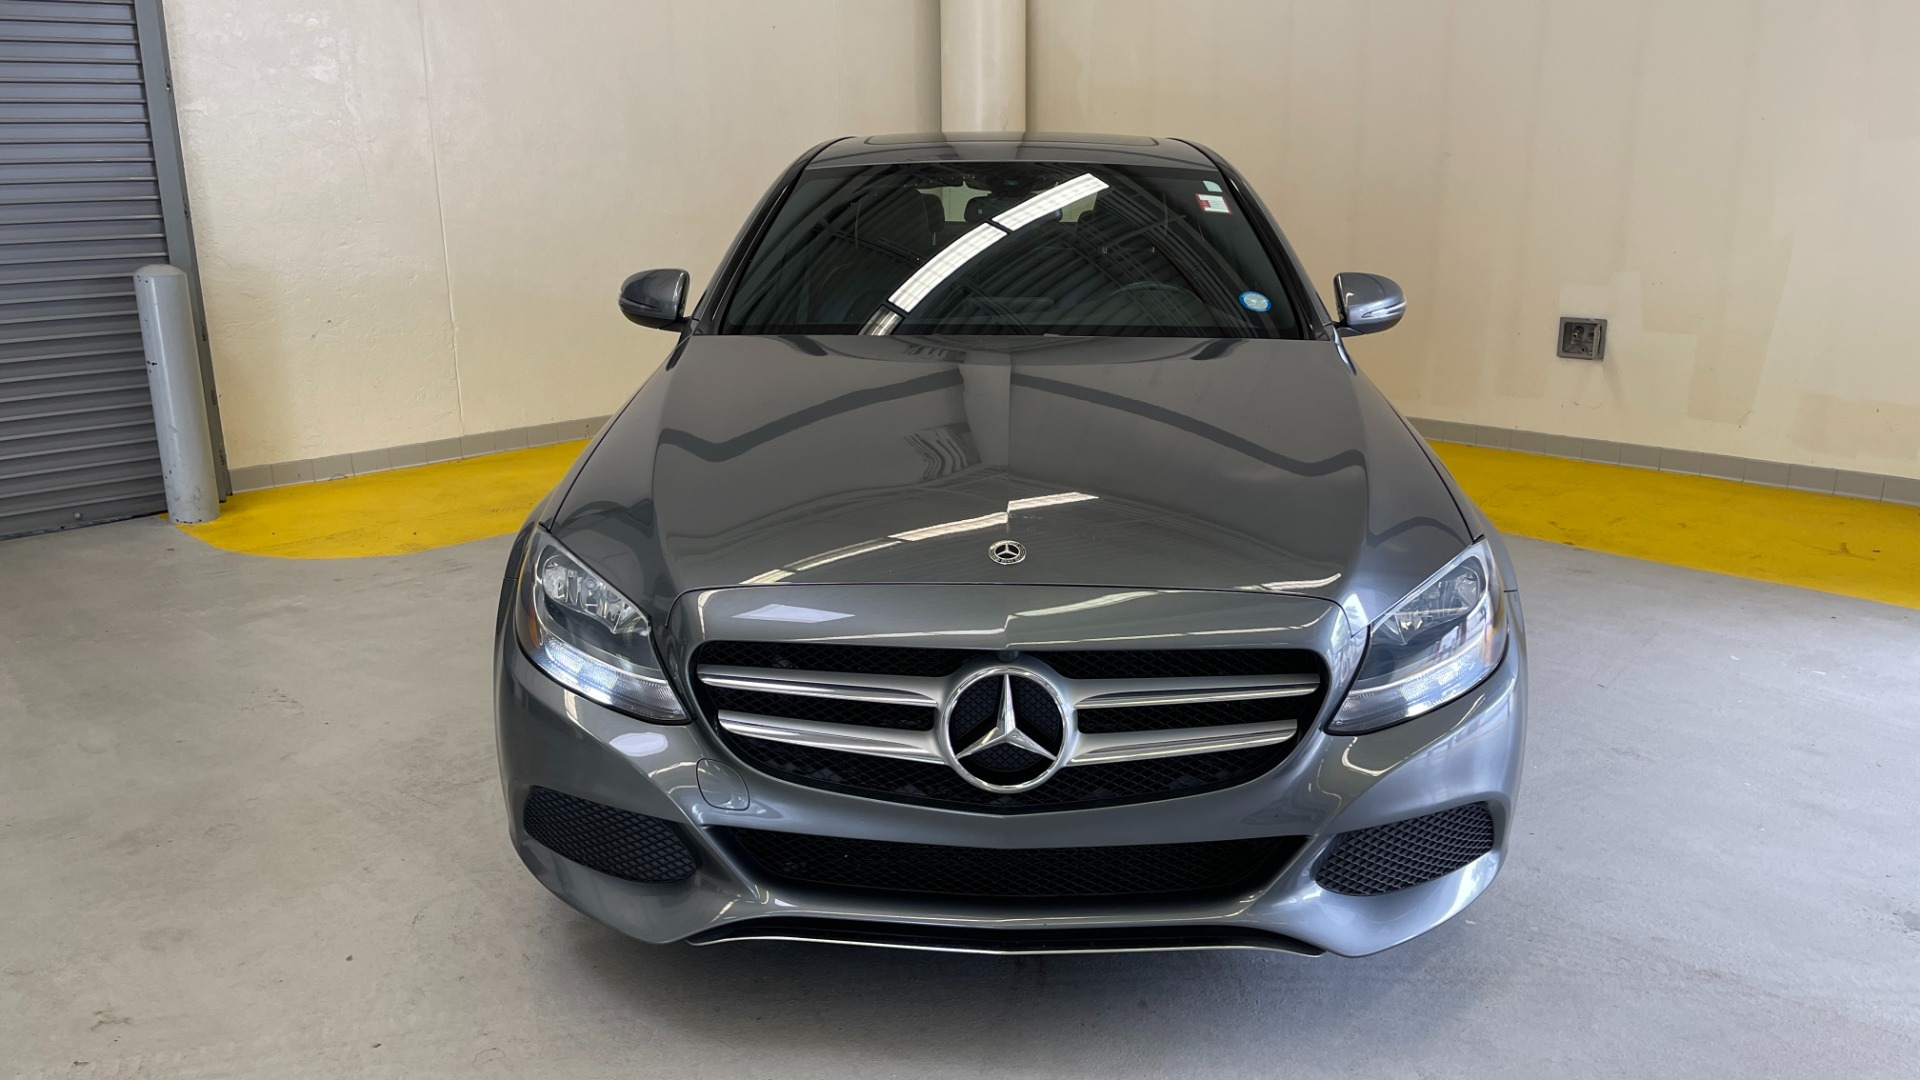 Used 2018 Mercedes-Benz C-CLASS C 300 PREMIUM / SUNROOF / APPLE CARPLAY / HTD STS / REARVIEW for sale $31,795 at Formula Imports in Charlotte NC 28227 9